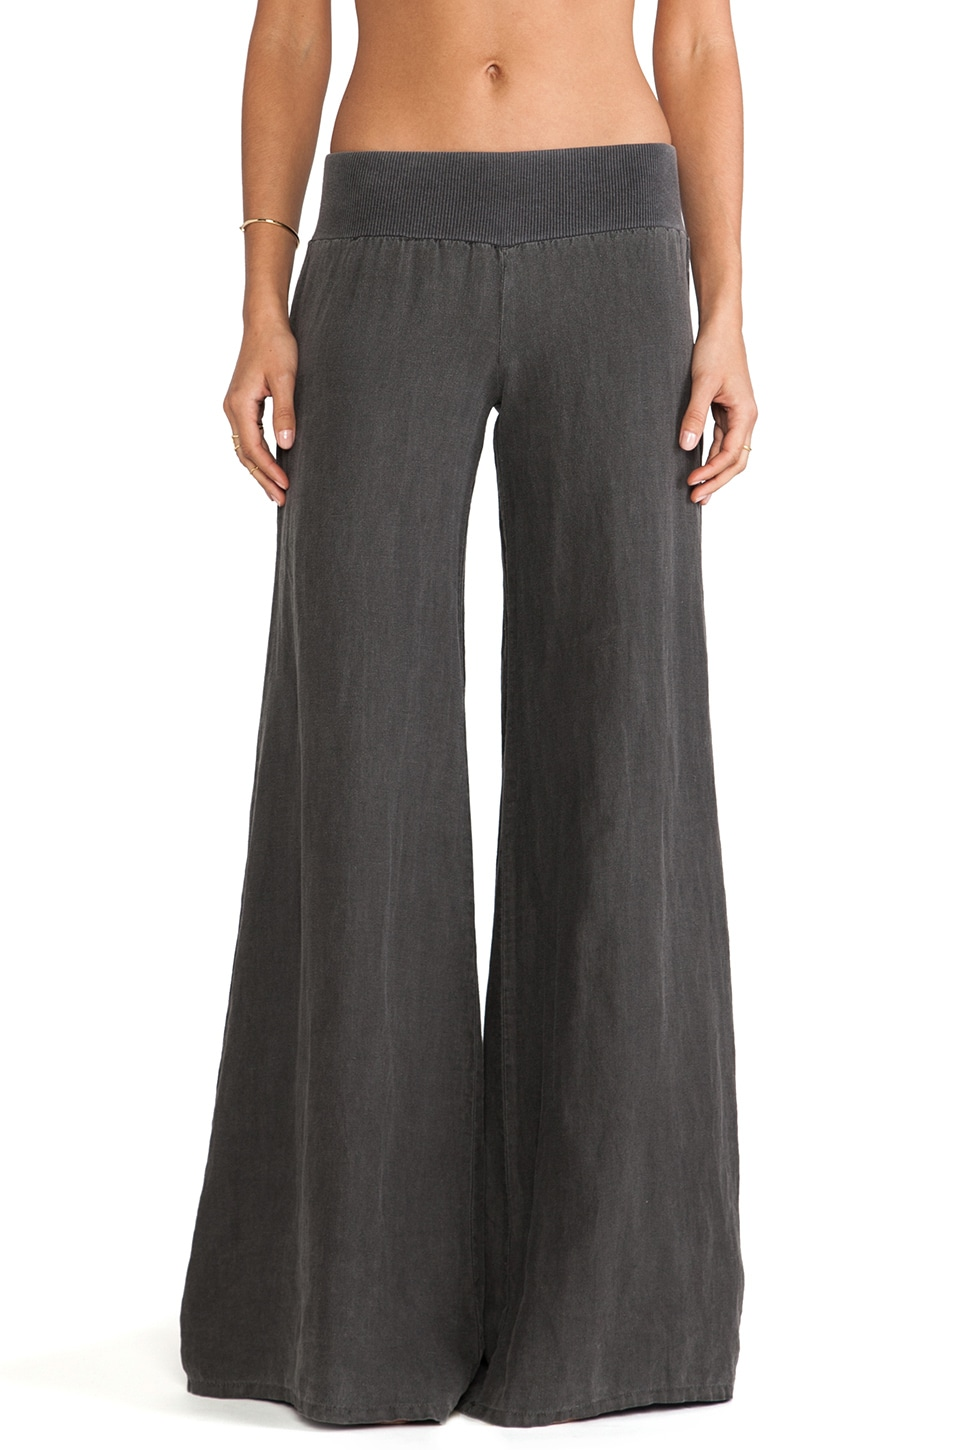 Enza Costa French Linen Linen Wide Leg in carbon